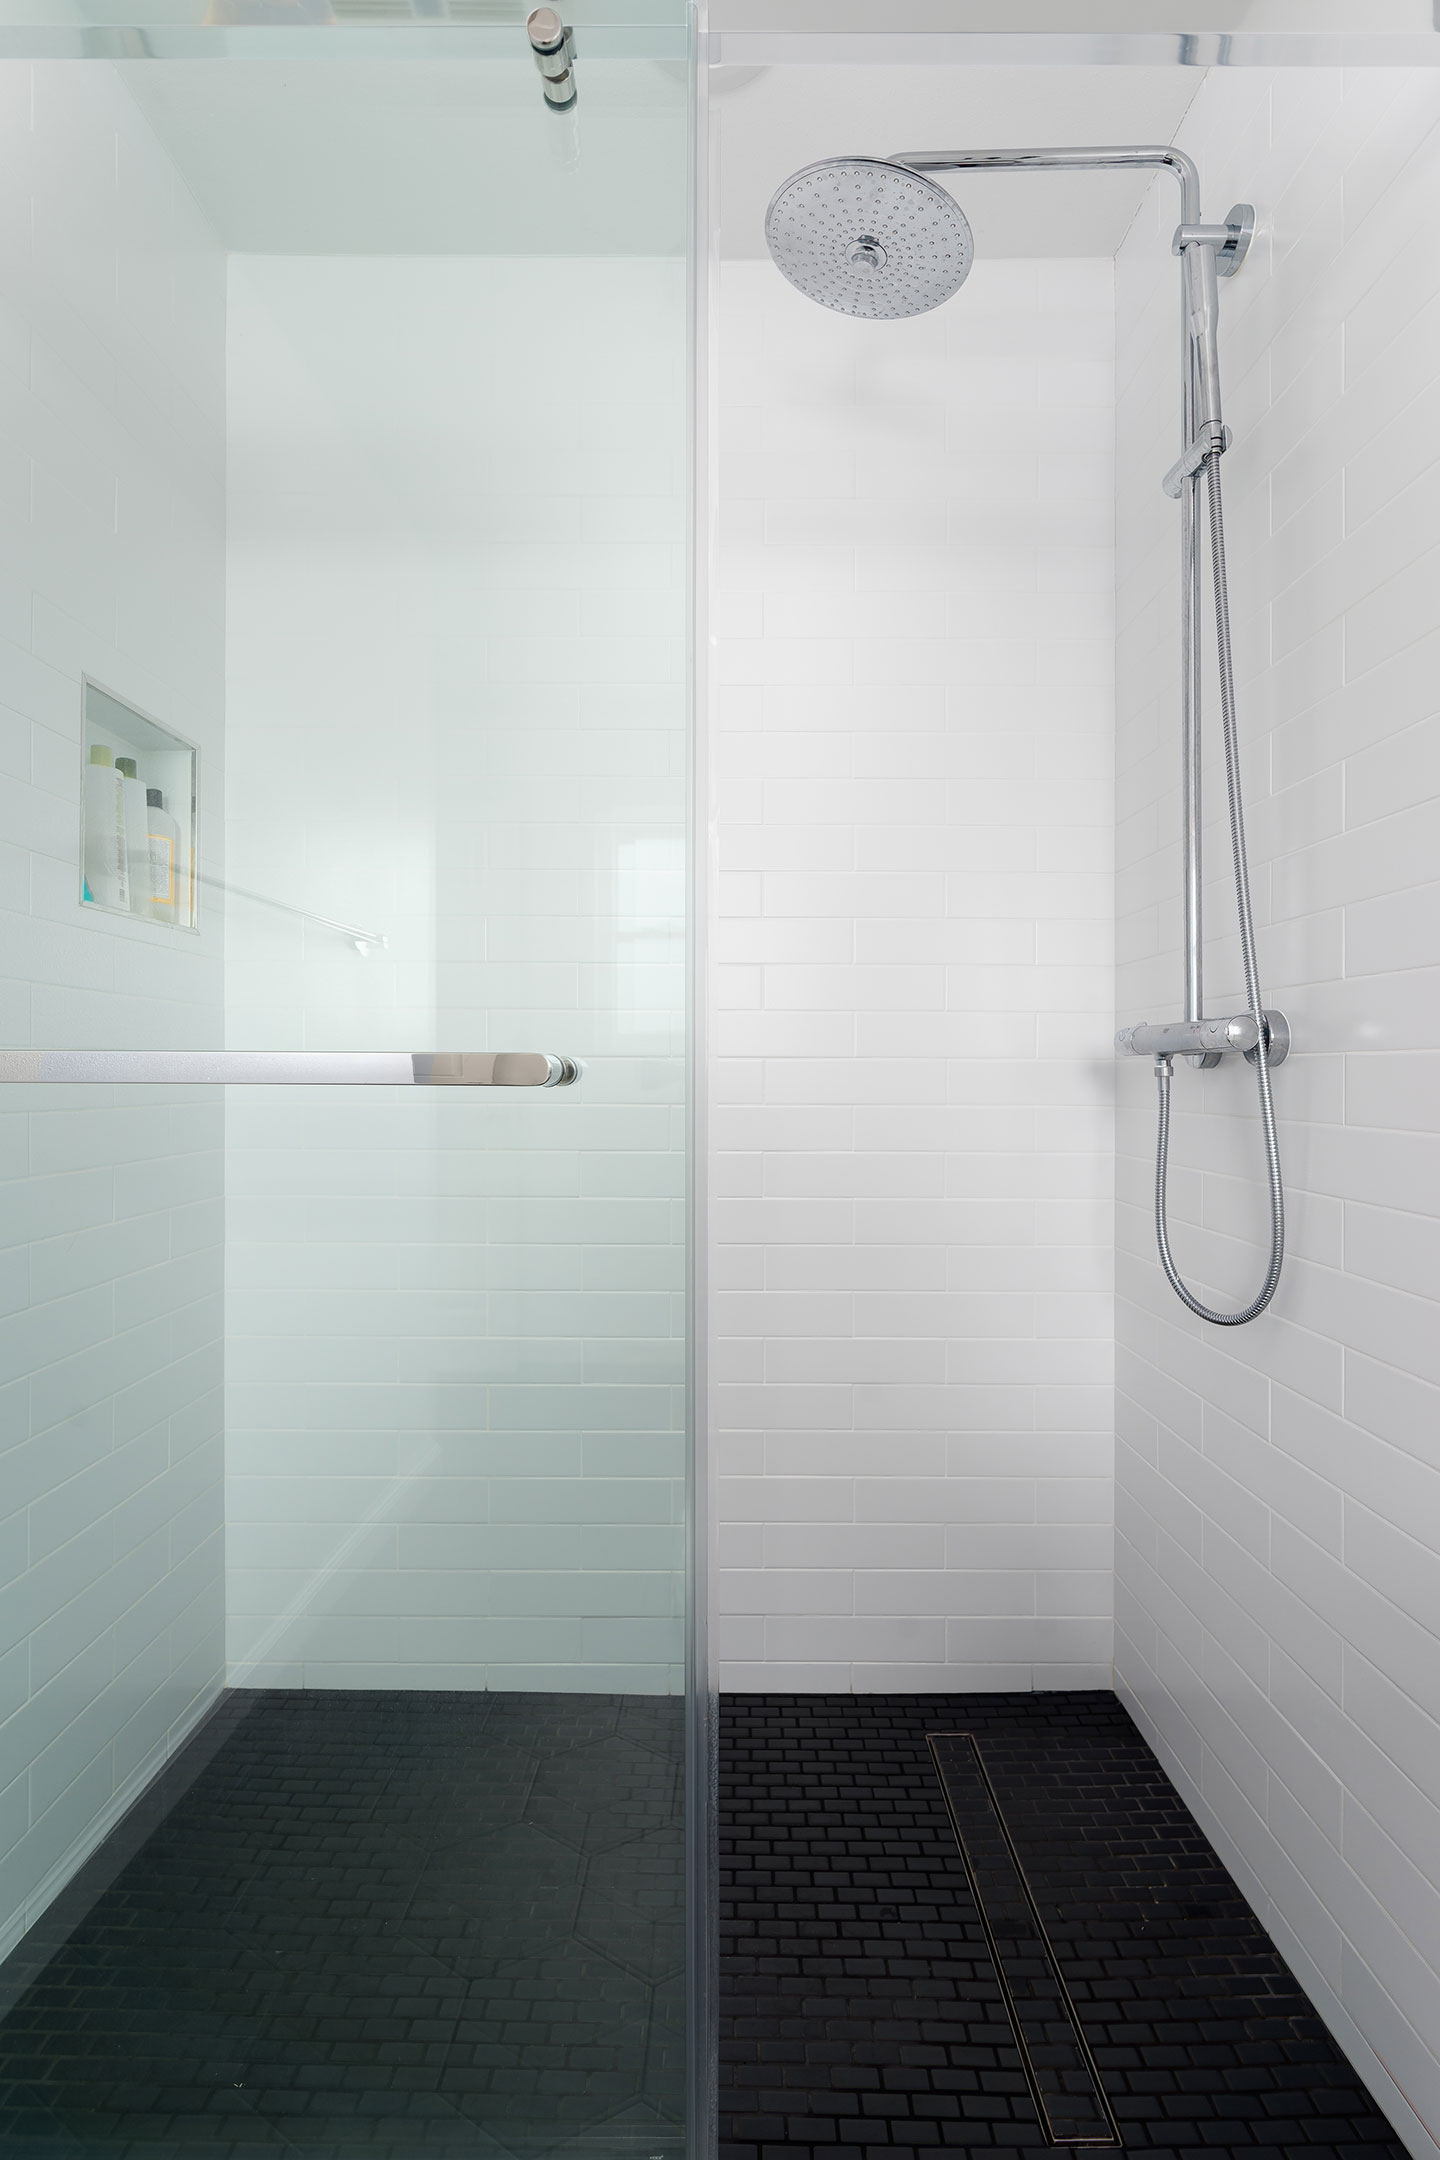 shower area with white tile walls and black floor tiles